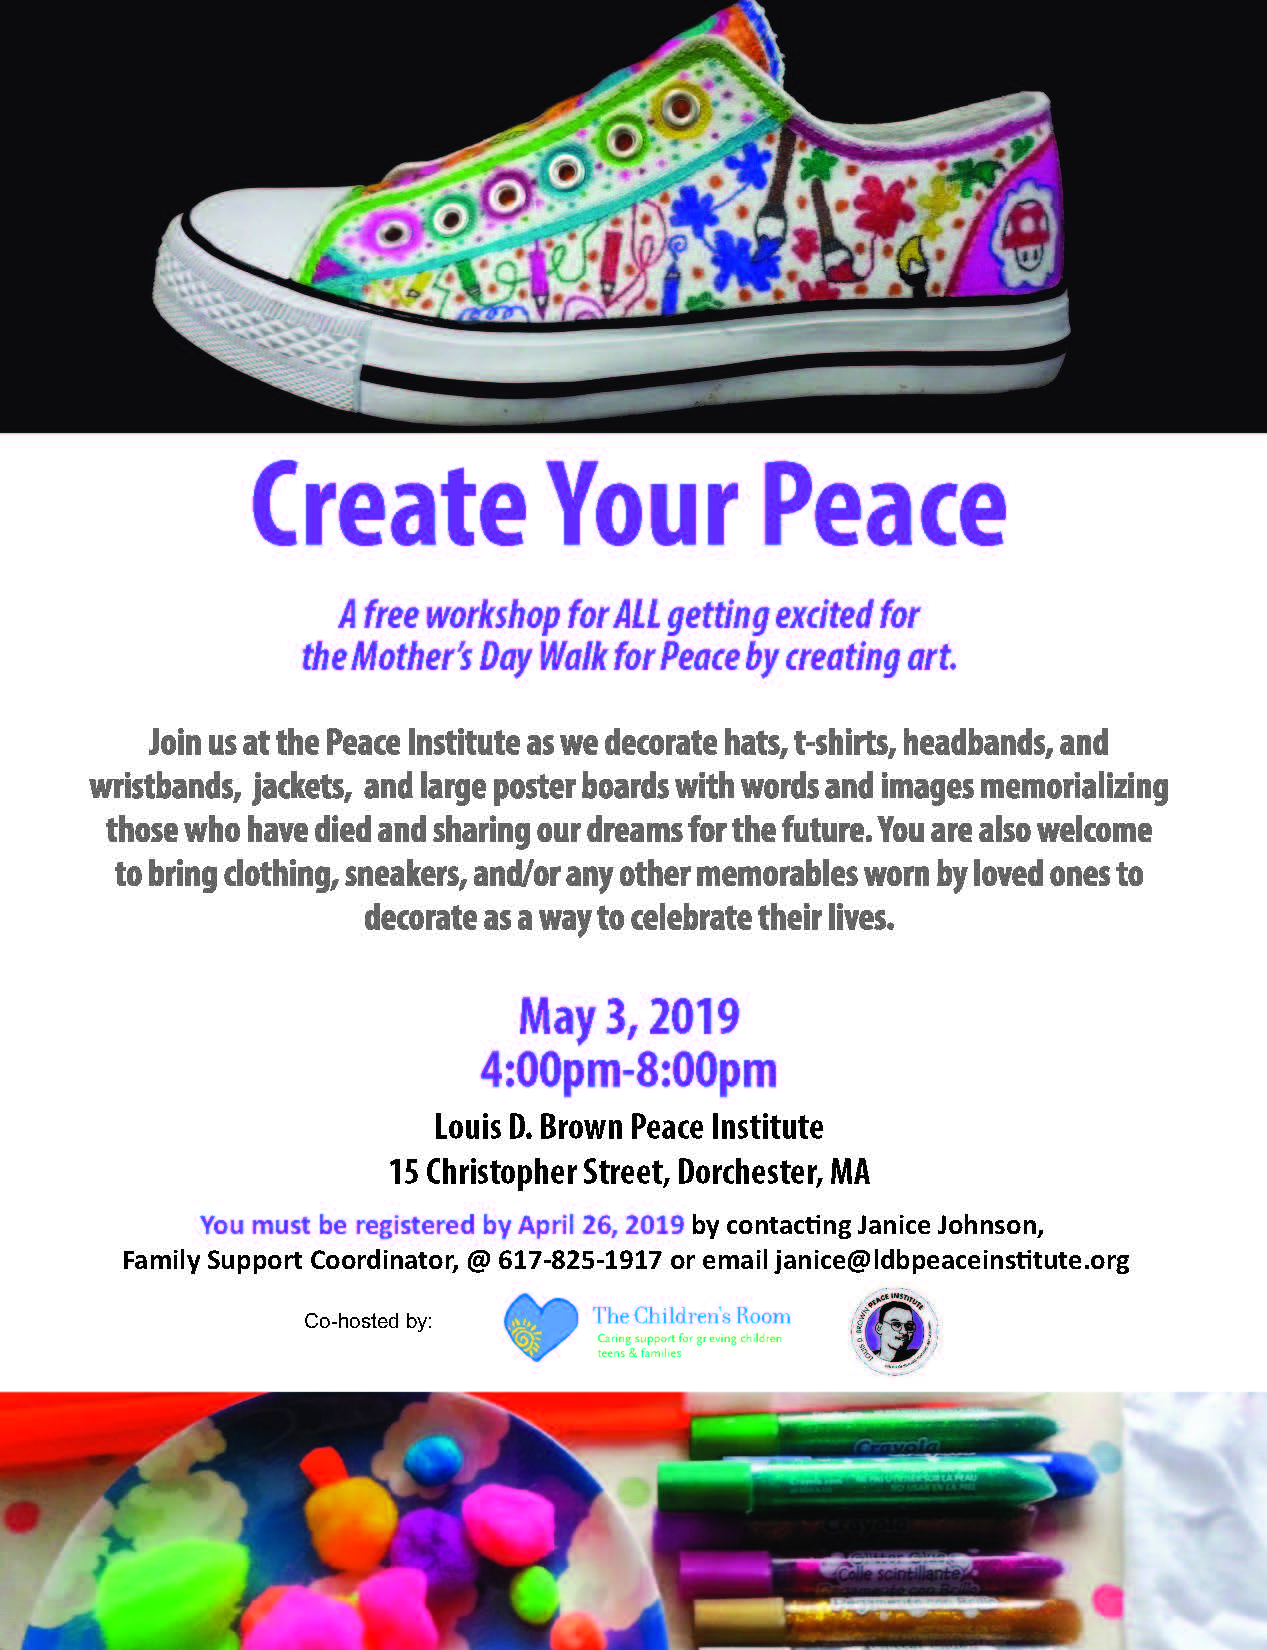 create your peace2019.jpg